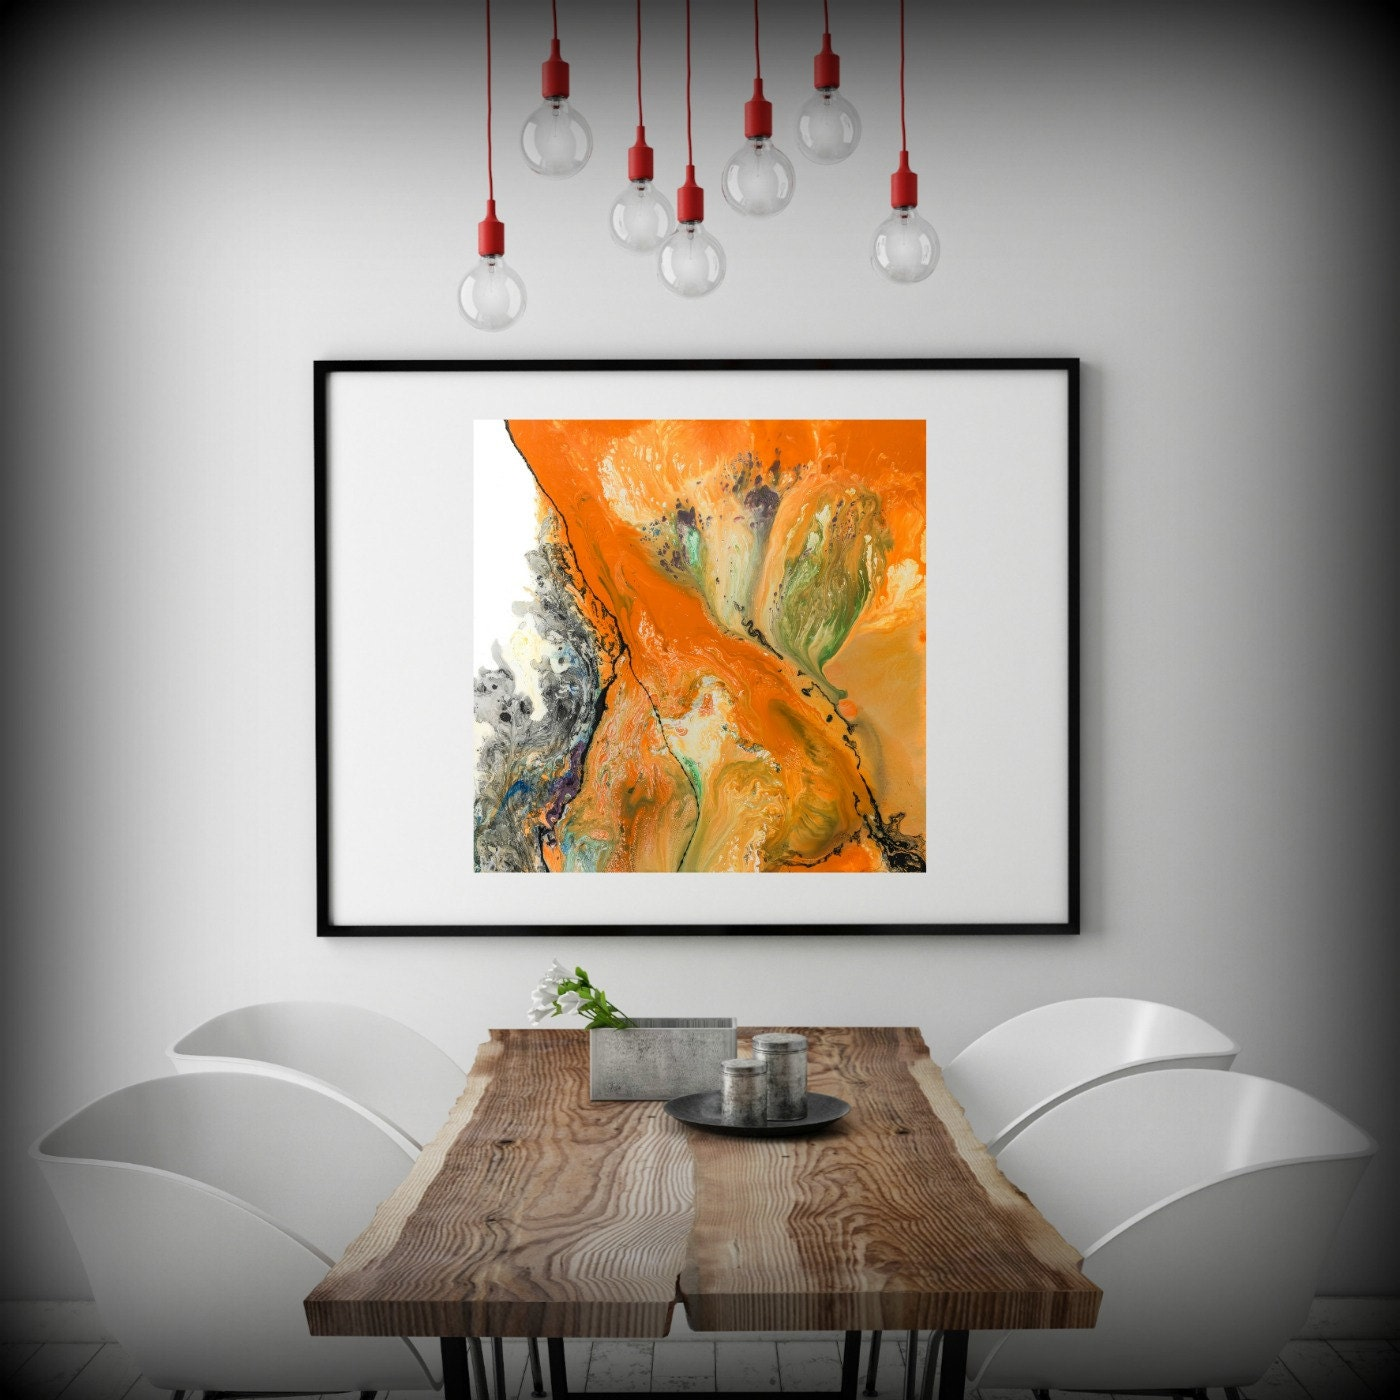 LIVING ROOM DECOR Square Wall Decor Orange Art Dining Room